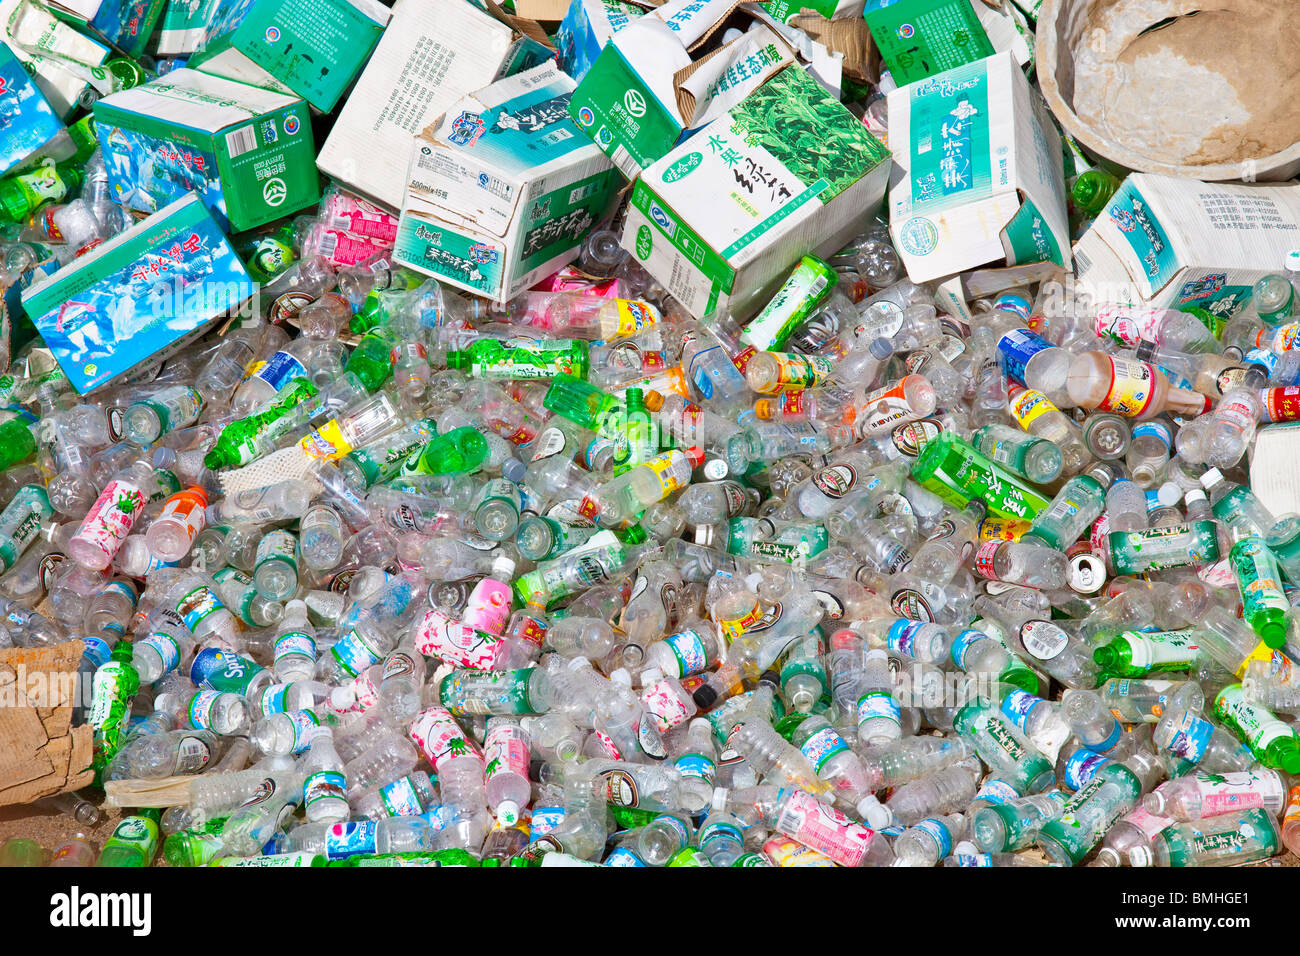 Plastic bottles gathered for recycling in Gyantse, Tibet - Stock Image